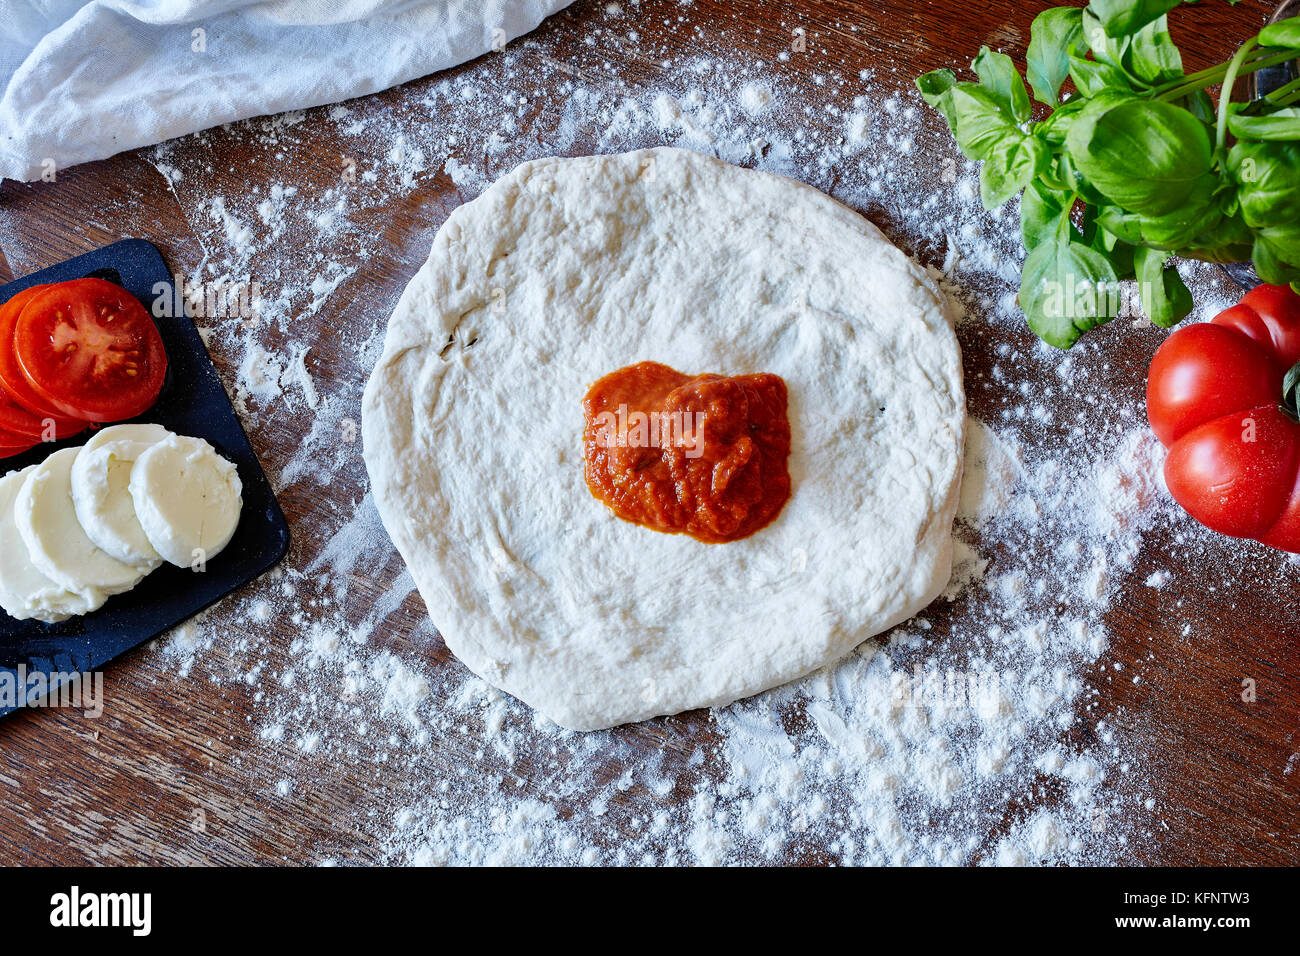 baking pizza rolled out dough no sauce - Stock Image